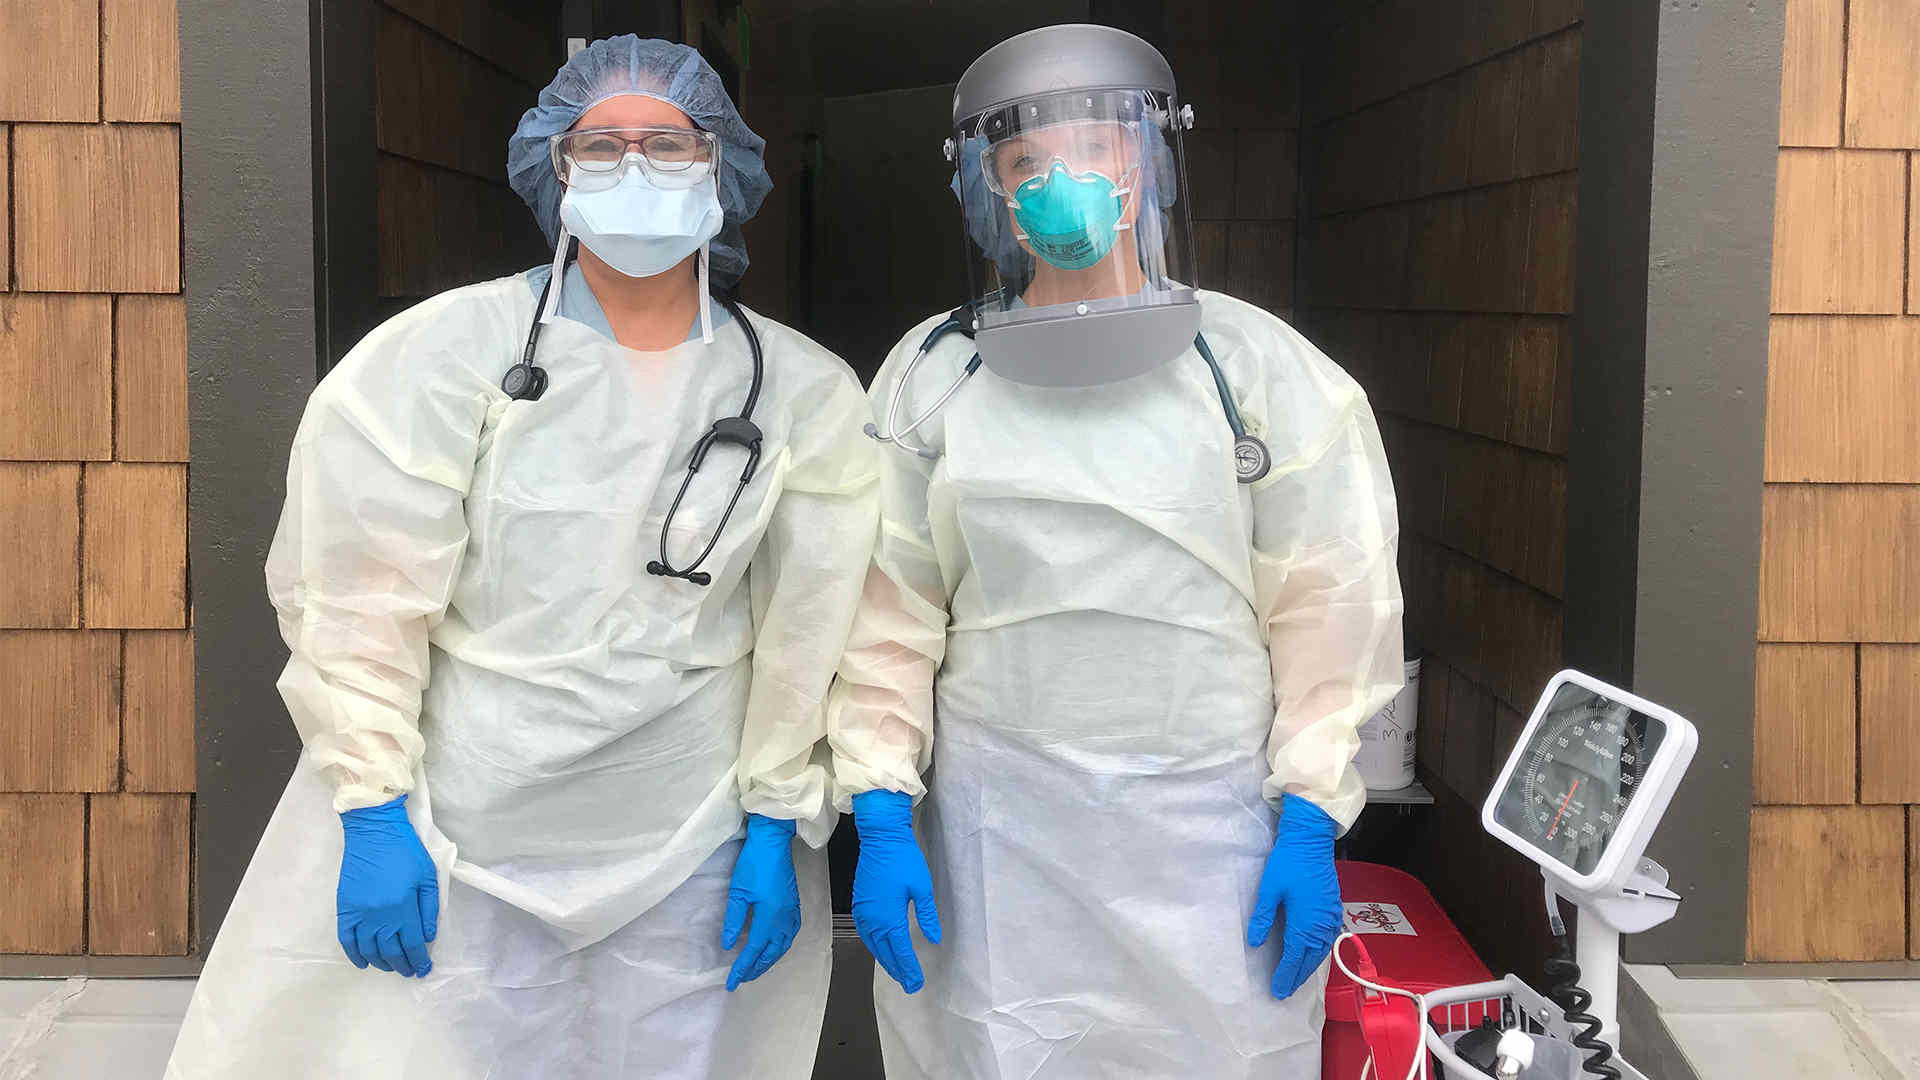 Two medical workers in full PPE gear